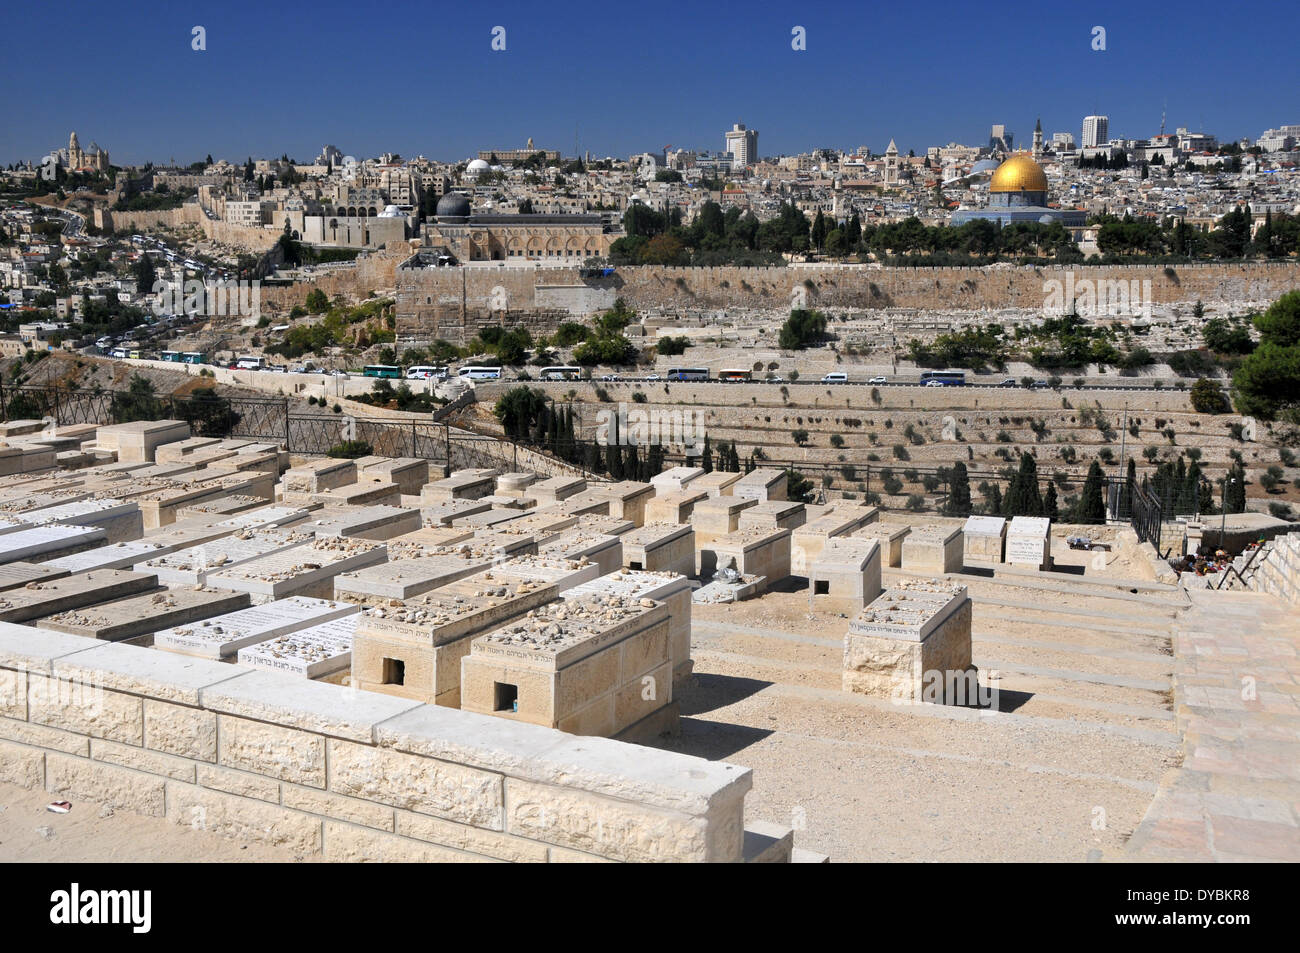 Tombs in the Jewish cemetery of the Mount of Olives and Old city of Jerusalem with  Dome of the Rock mosque, Jerusalem, Israel - Stock Image